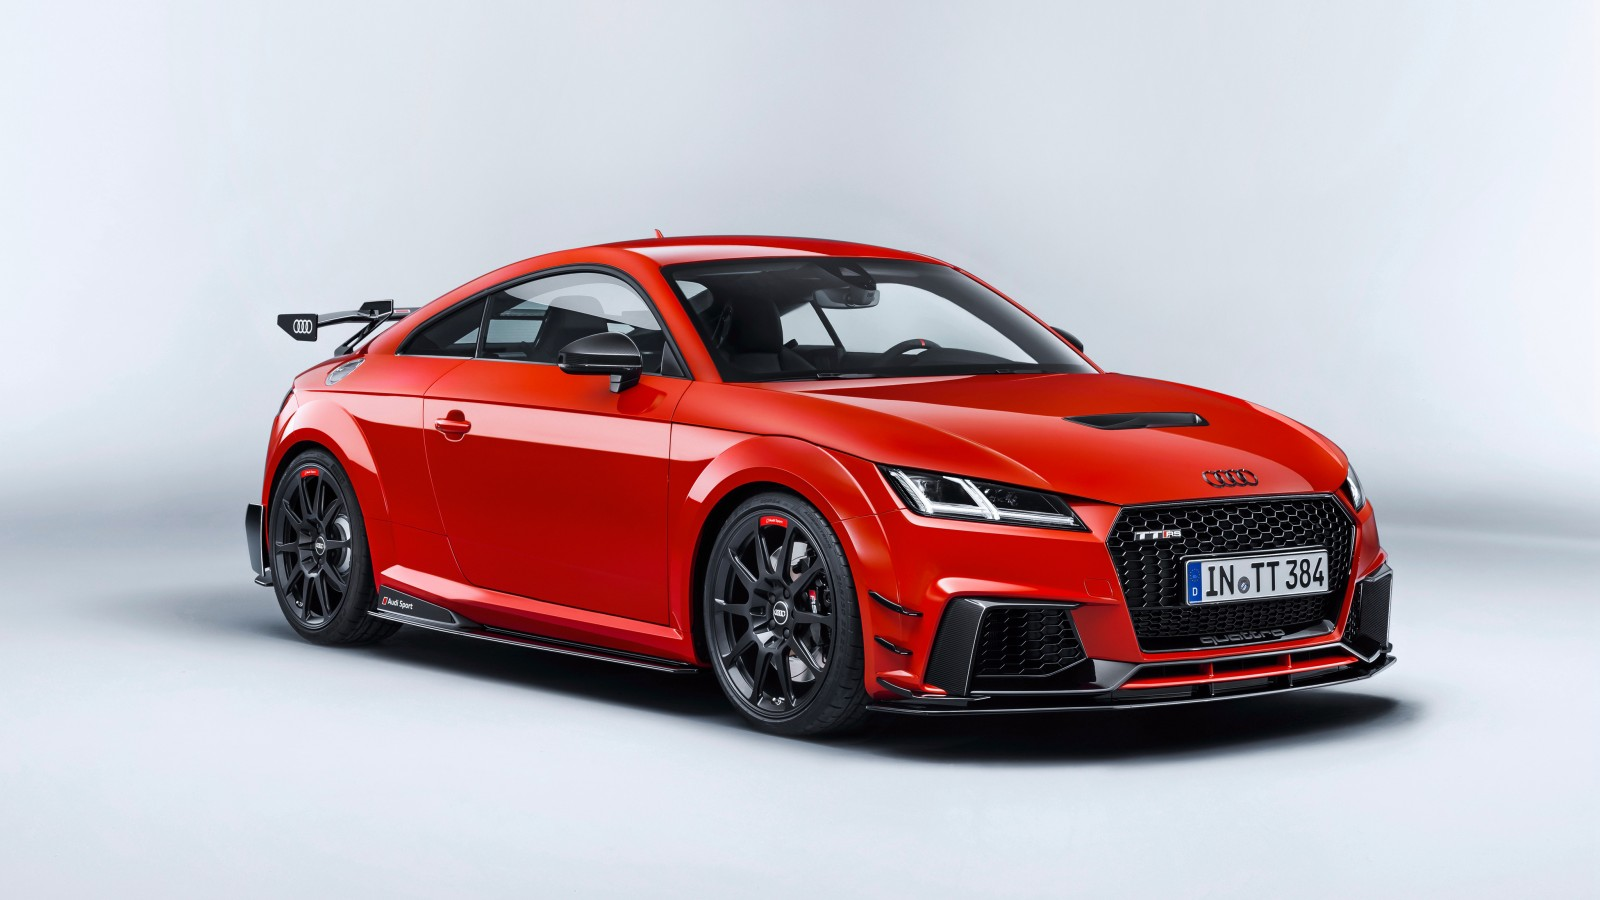 2018 Audi TT RS Coupe 2 Wallpaper | HD Car Wallpapers | ID ...